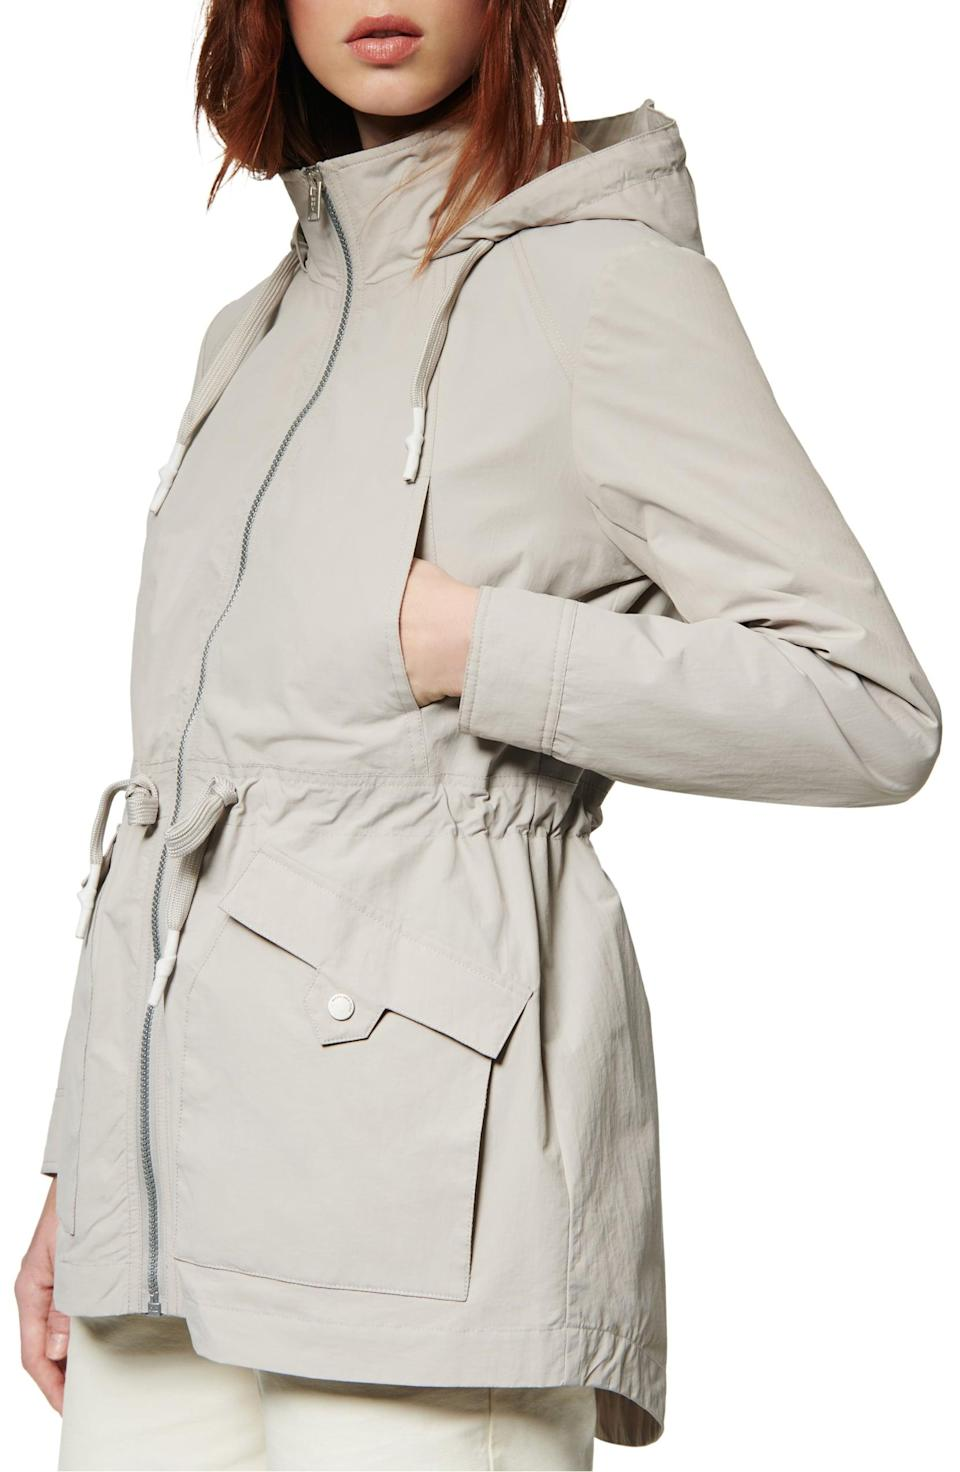 "<p>As far as layers go, the anorak is about as cool as the come. <a href=""https://www.popsugar.com/buy/jacket-551948?p_name=This%20jacket&retailer=shop.nordstrom.com&pid=551948&price=130&evar1=fab%3Aus&evar9=34097656&evar98=https%3A%2F%2Fwww.popsugar.com%2Ffashion%2Fphoto-gallery%2F34097656%2Fimage%2F34097662%2FAnorak&list1=shopping%2Canthropologie%2Cstyle%20how%20to&prop13=mobile&pdata=1"" class=""link rapid-noclick-resp"" rel=""nofollow noopener"" target=""_blank"" data-ylk=""slk:This jacket"">This jacket</a> ($130, originally $200) isn't just functional - a multipurpose topper that'll serve you well from Spring through Winter - it lends a quintessential cool-girl vibe to everything from your brunch gear to a printed dress. </p>"